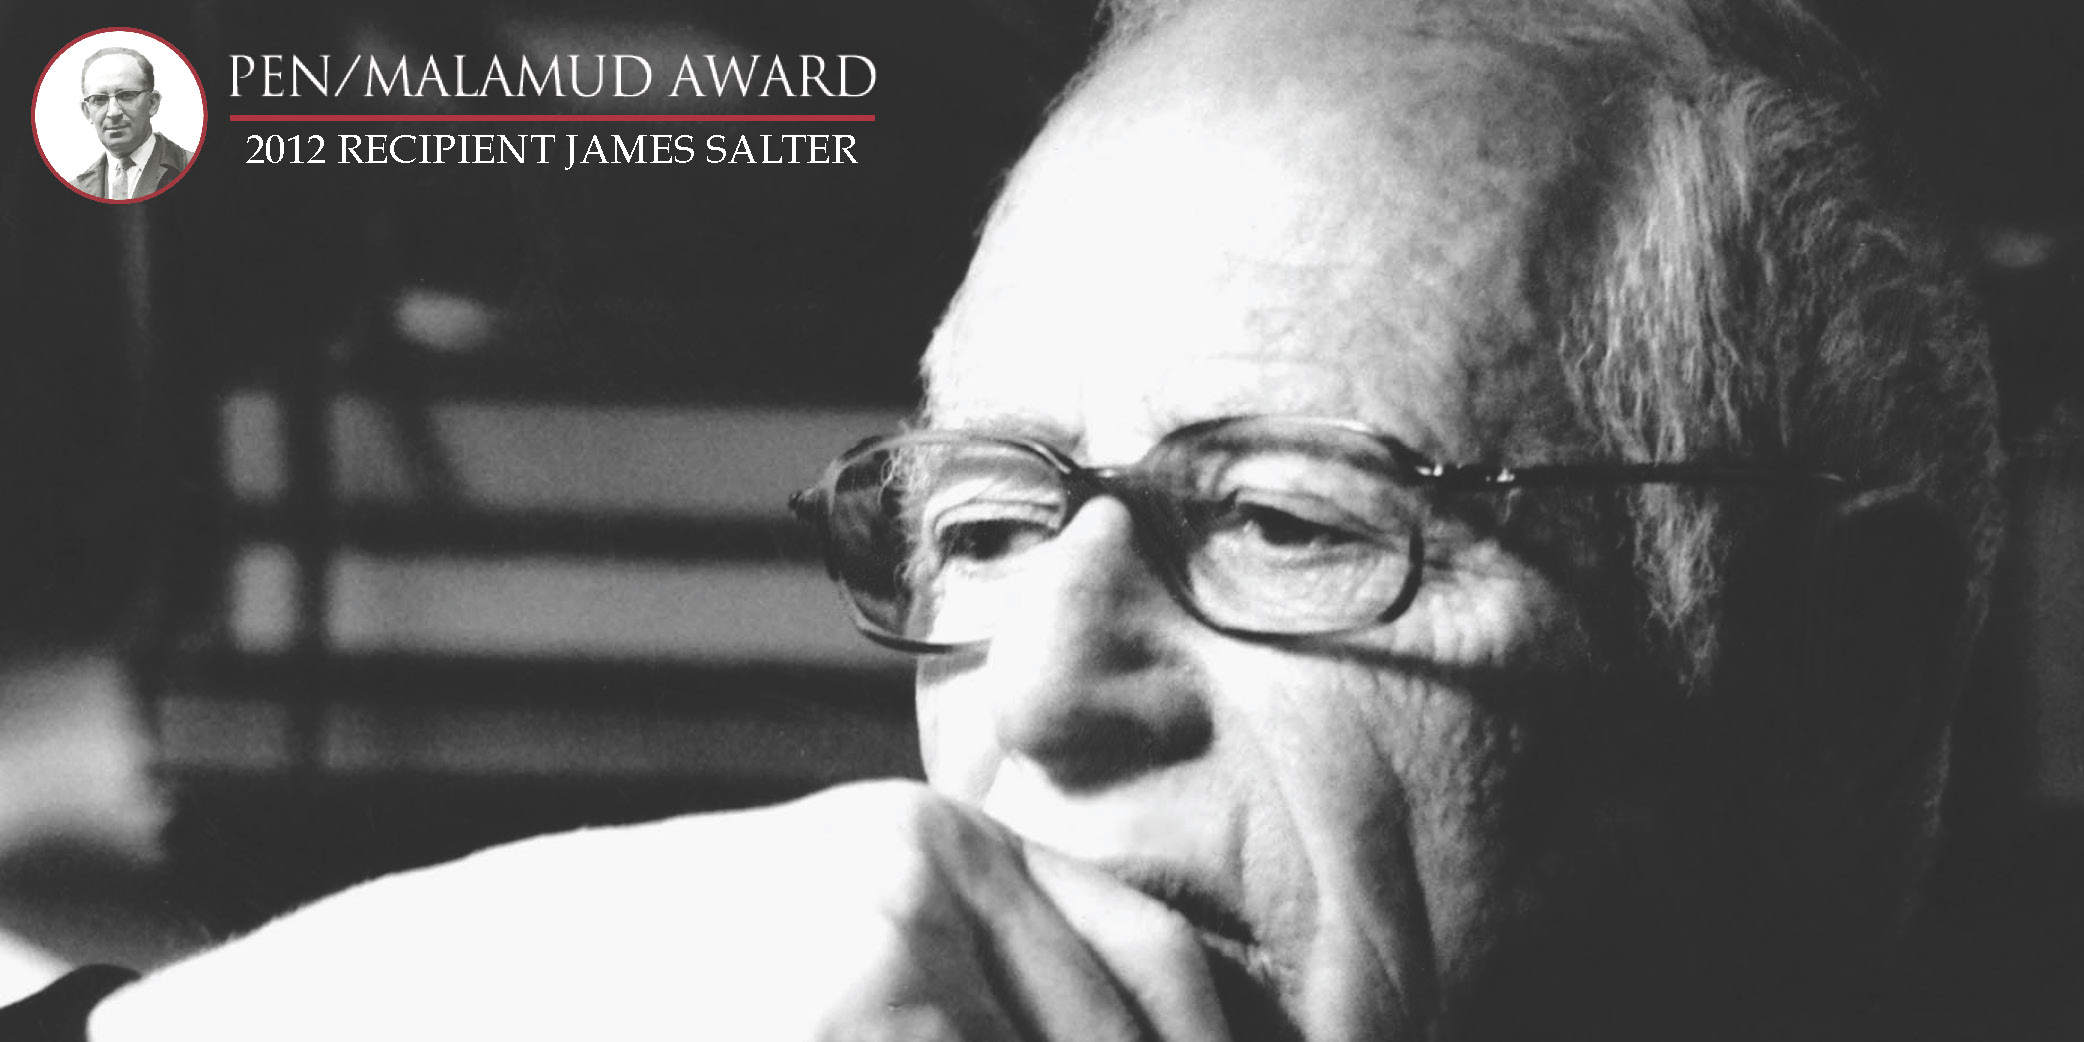 James Salter headshot and PEN/Malamud logo.